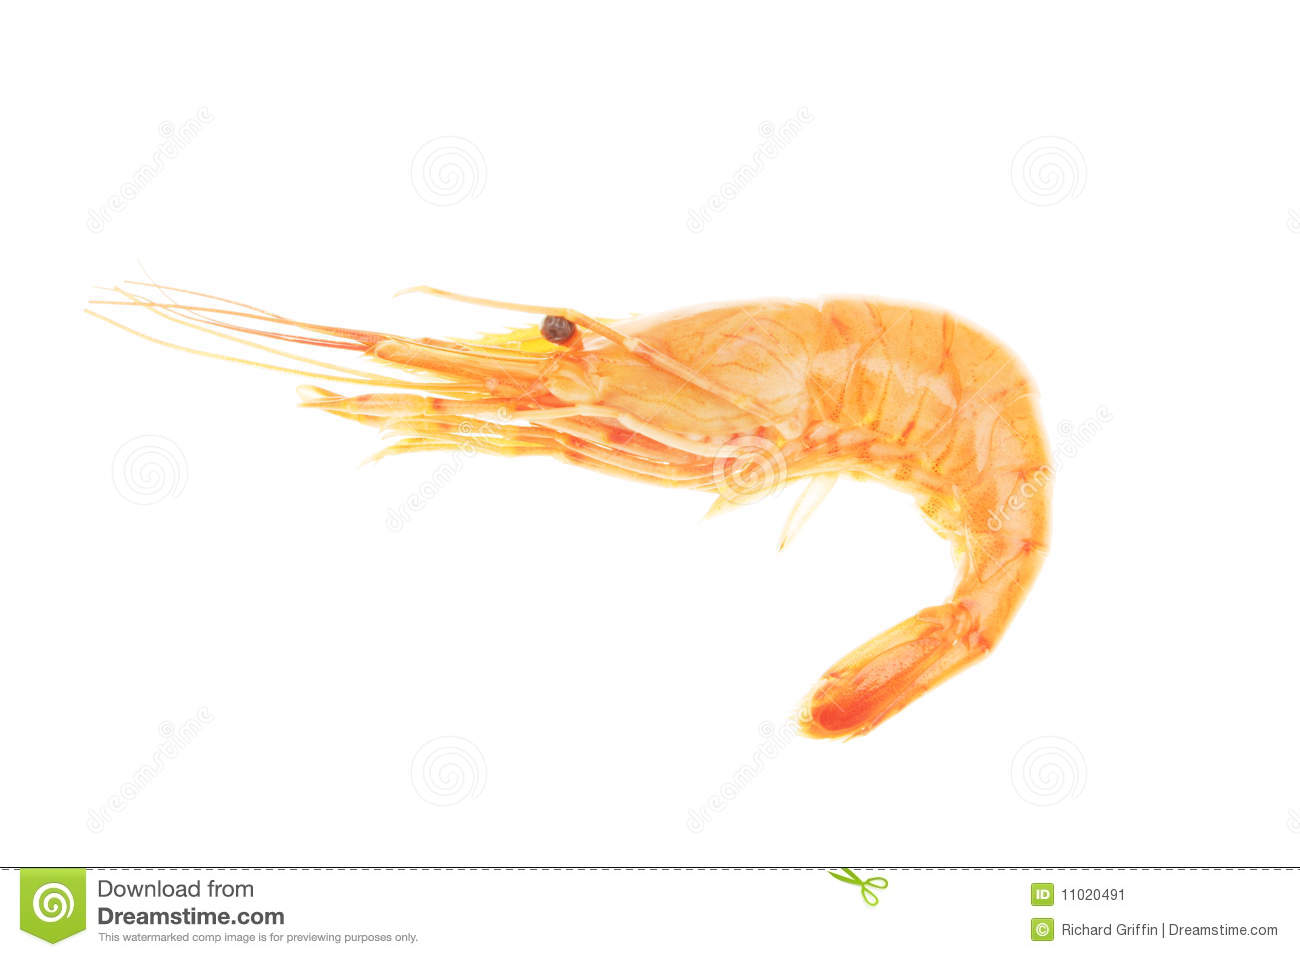 Shrimp Stock Image - Image: 11020491